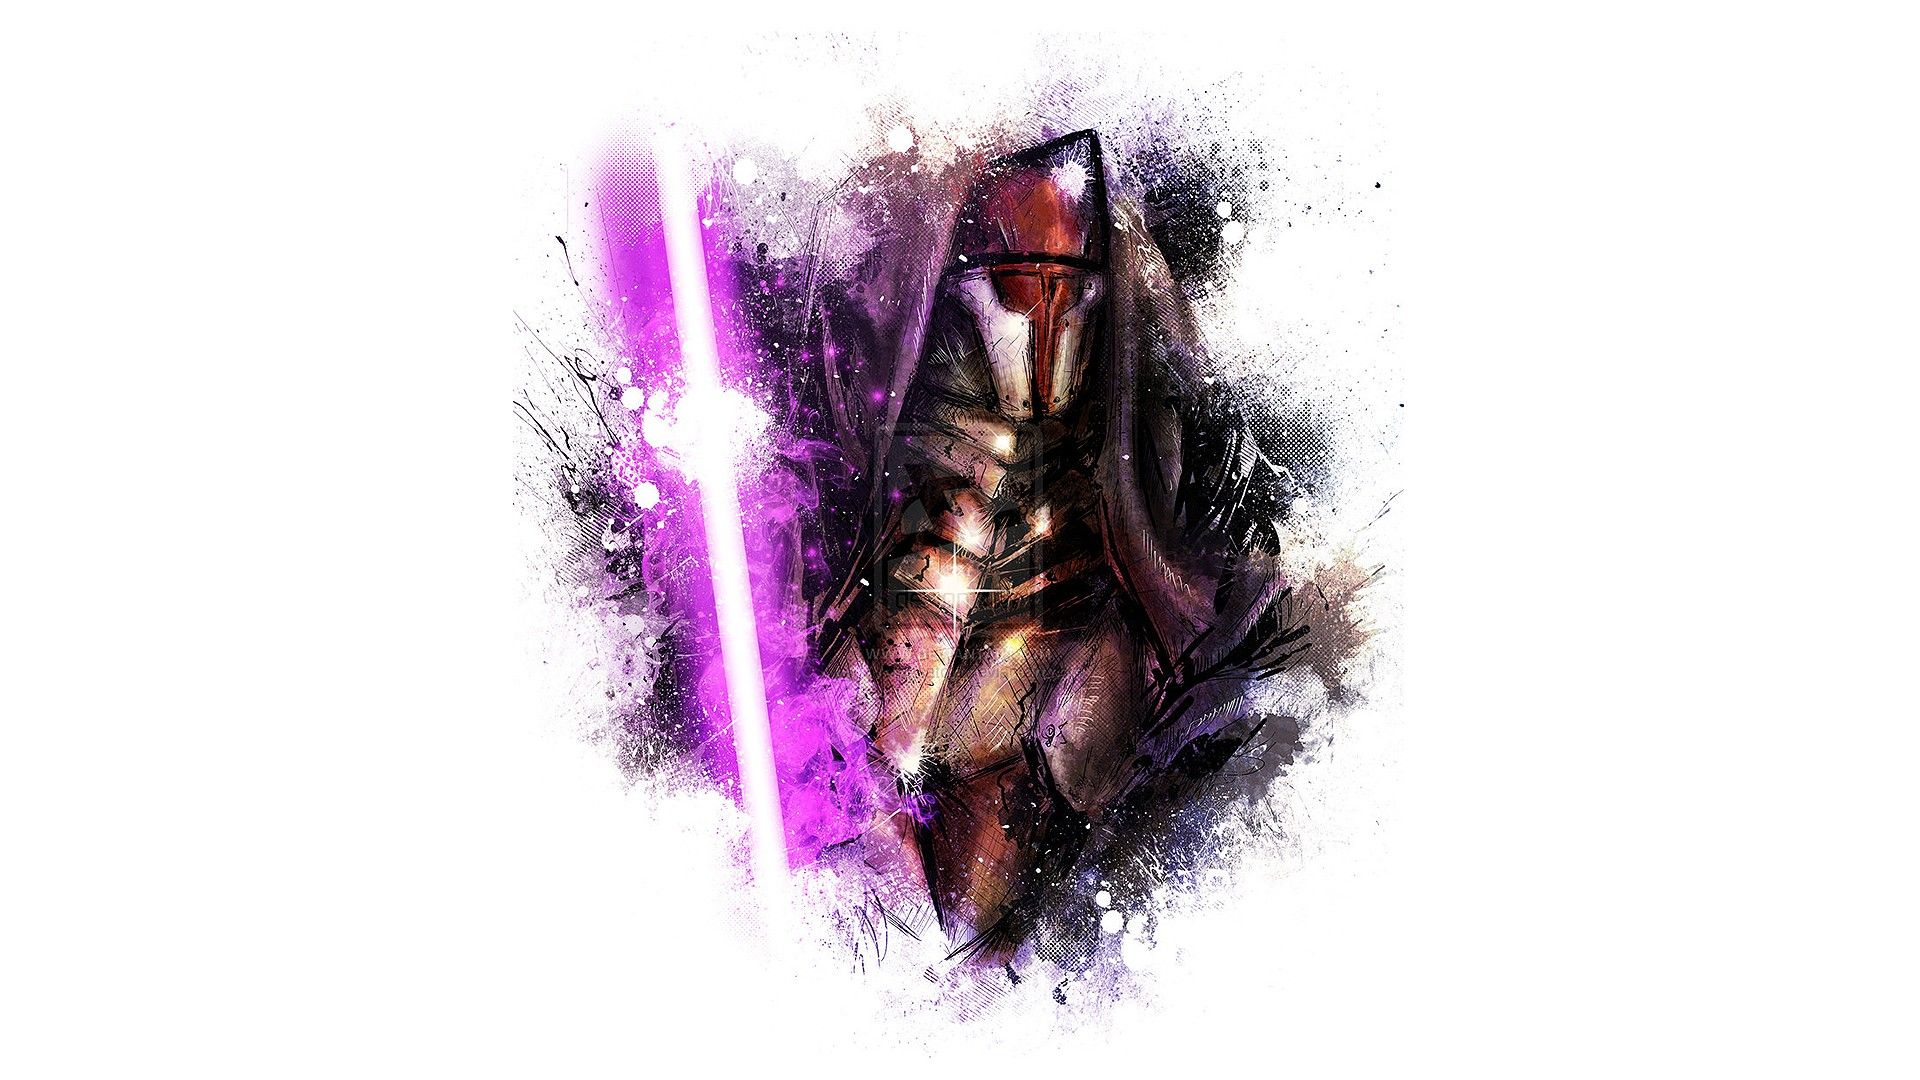 Star wars knights of the old republic ii the sith lords 1920 1080 2